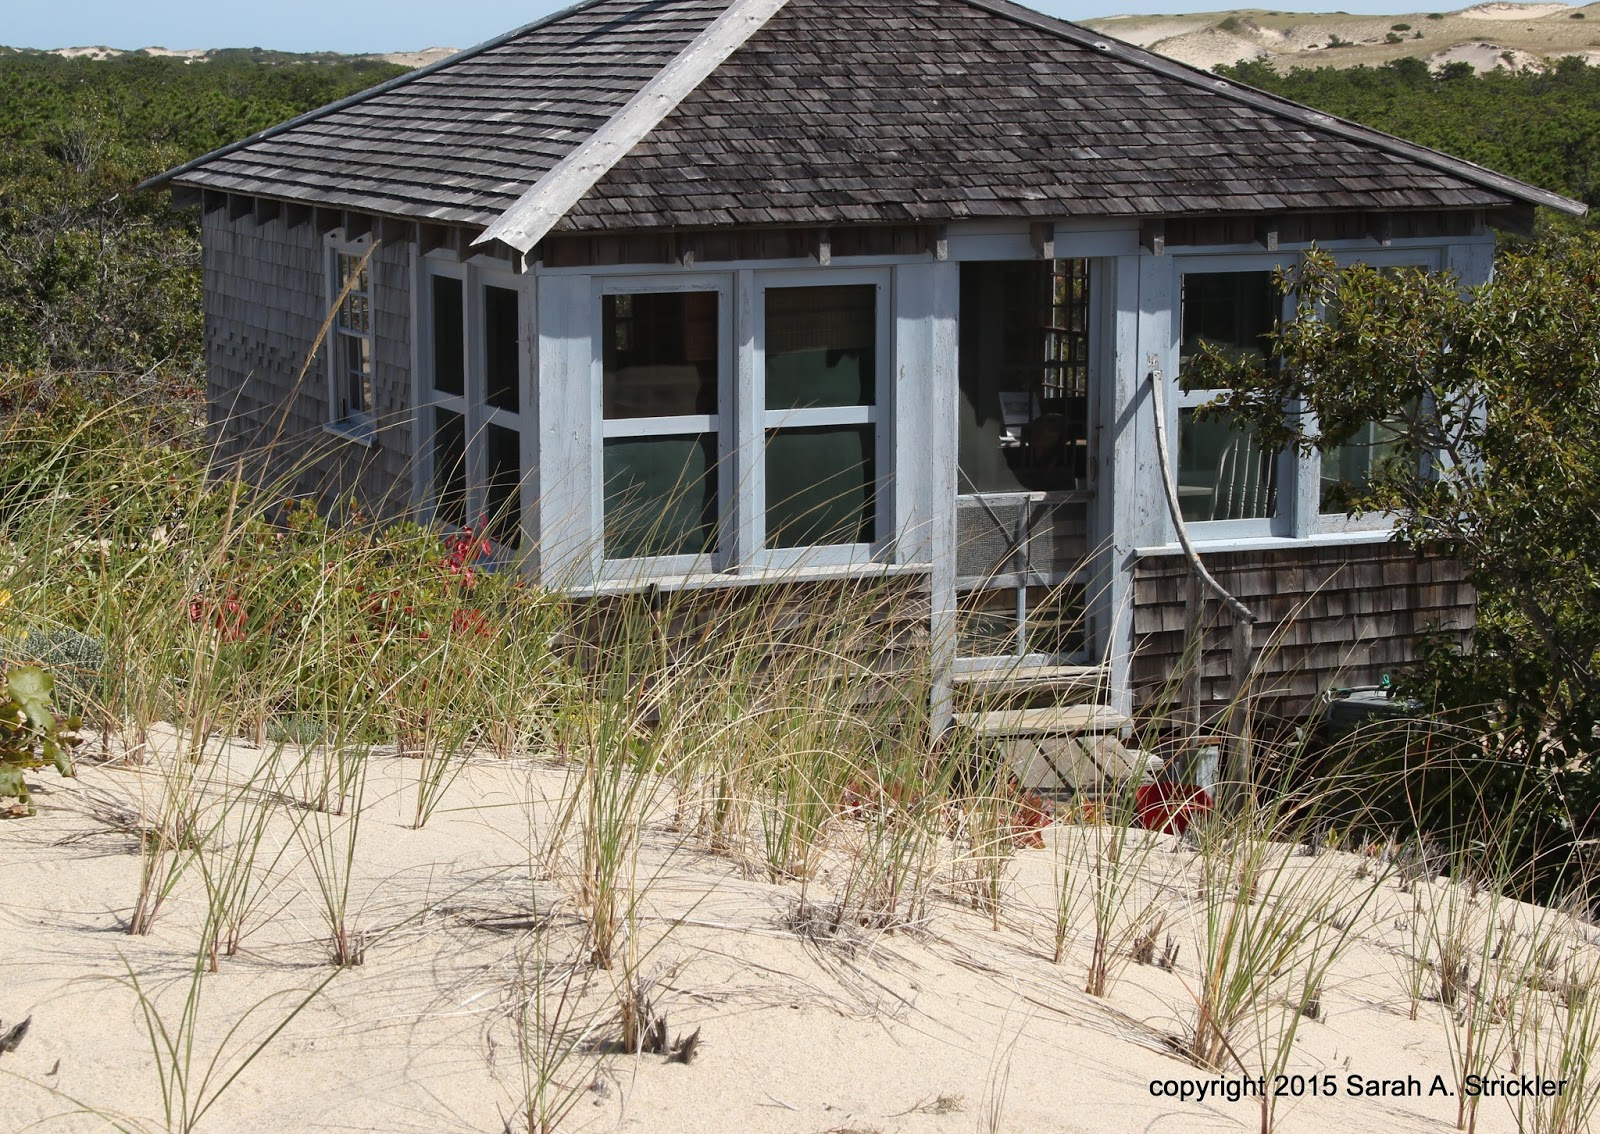 Dune Shacks Cape Cod Part - 32: A Restored Dune Shack And One Of The More Palatial Ones